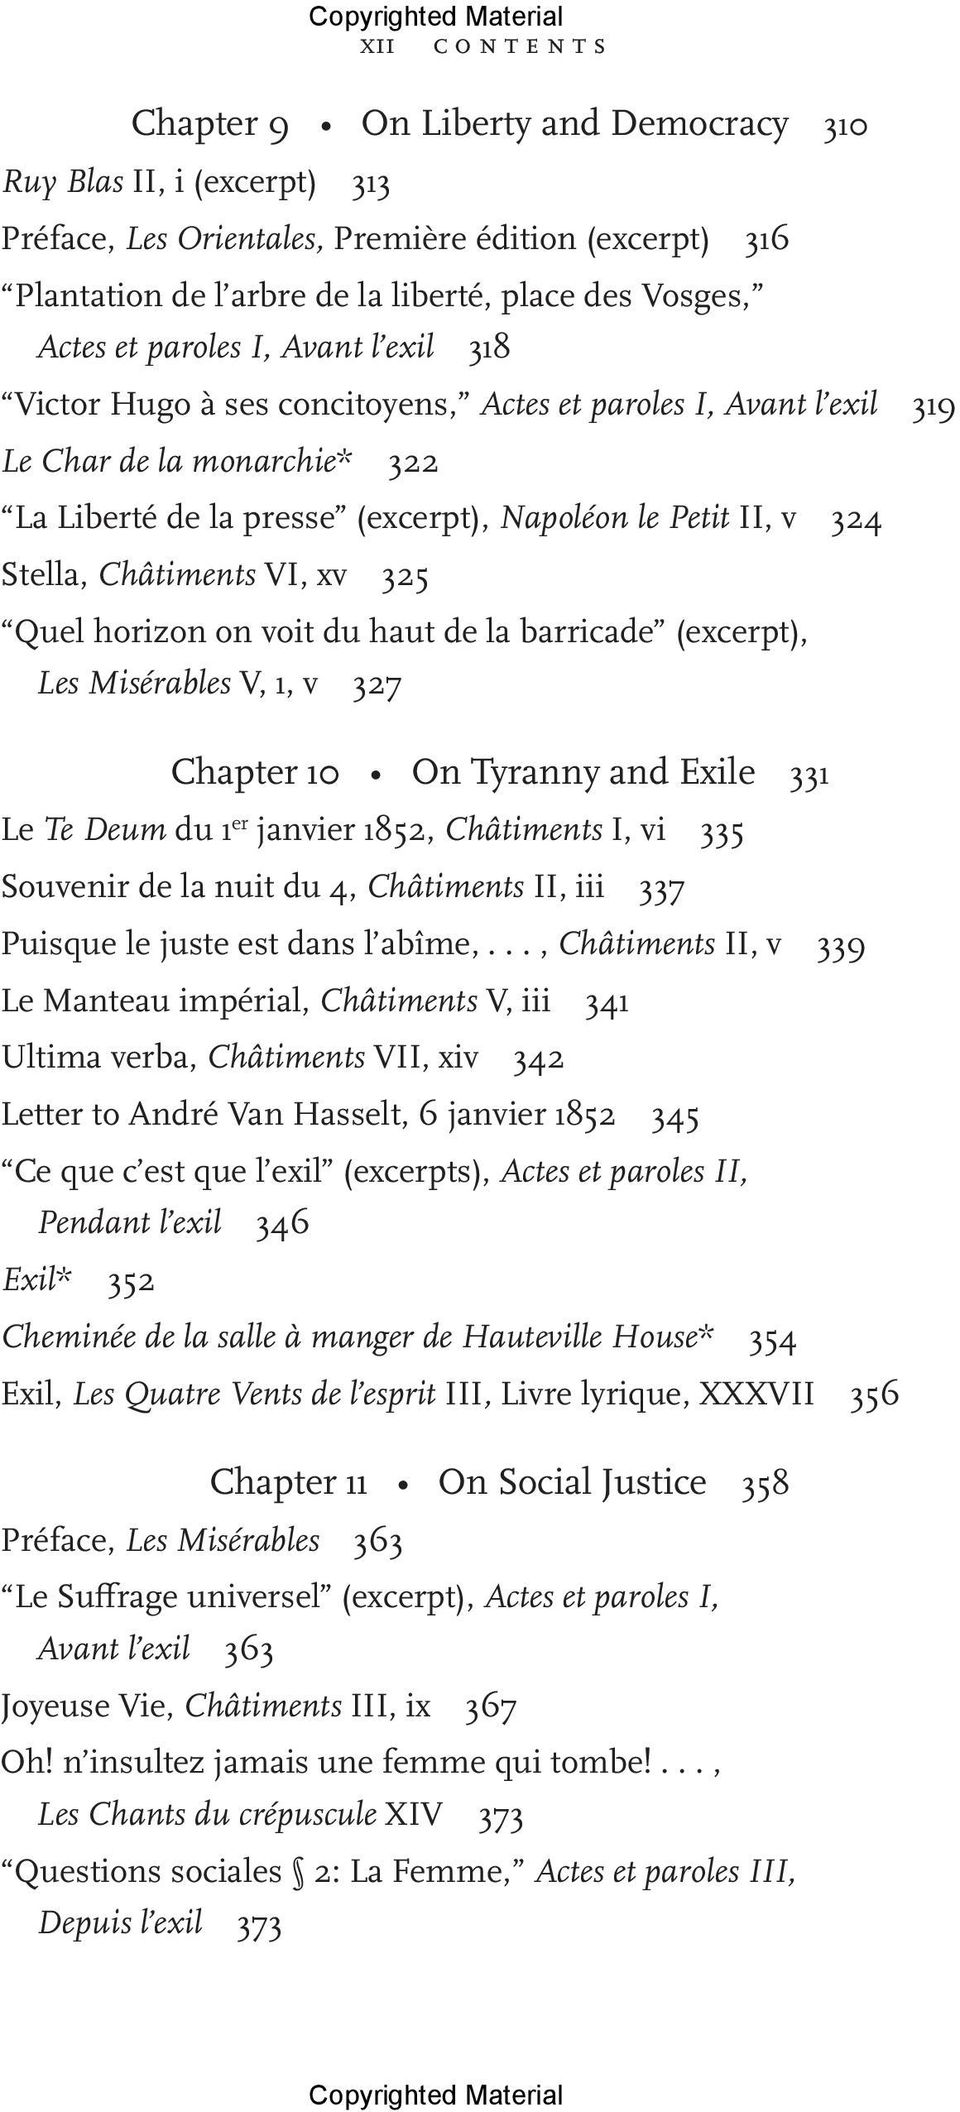 Châtiments VI, xv 325 Quel horizon on voit du haut de la barricade (excerpt), Les Misérables V, 1, v 327 Chapter 10 On Tyranny and Exile 331 Le Te Deum du 1 er janvier 1852, Châtiments I, vi 335